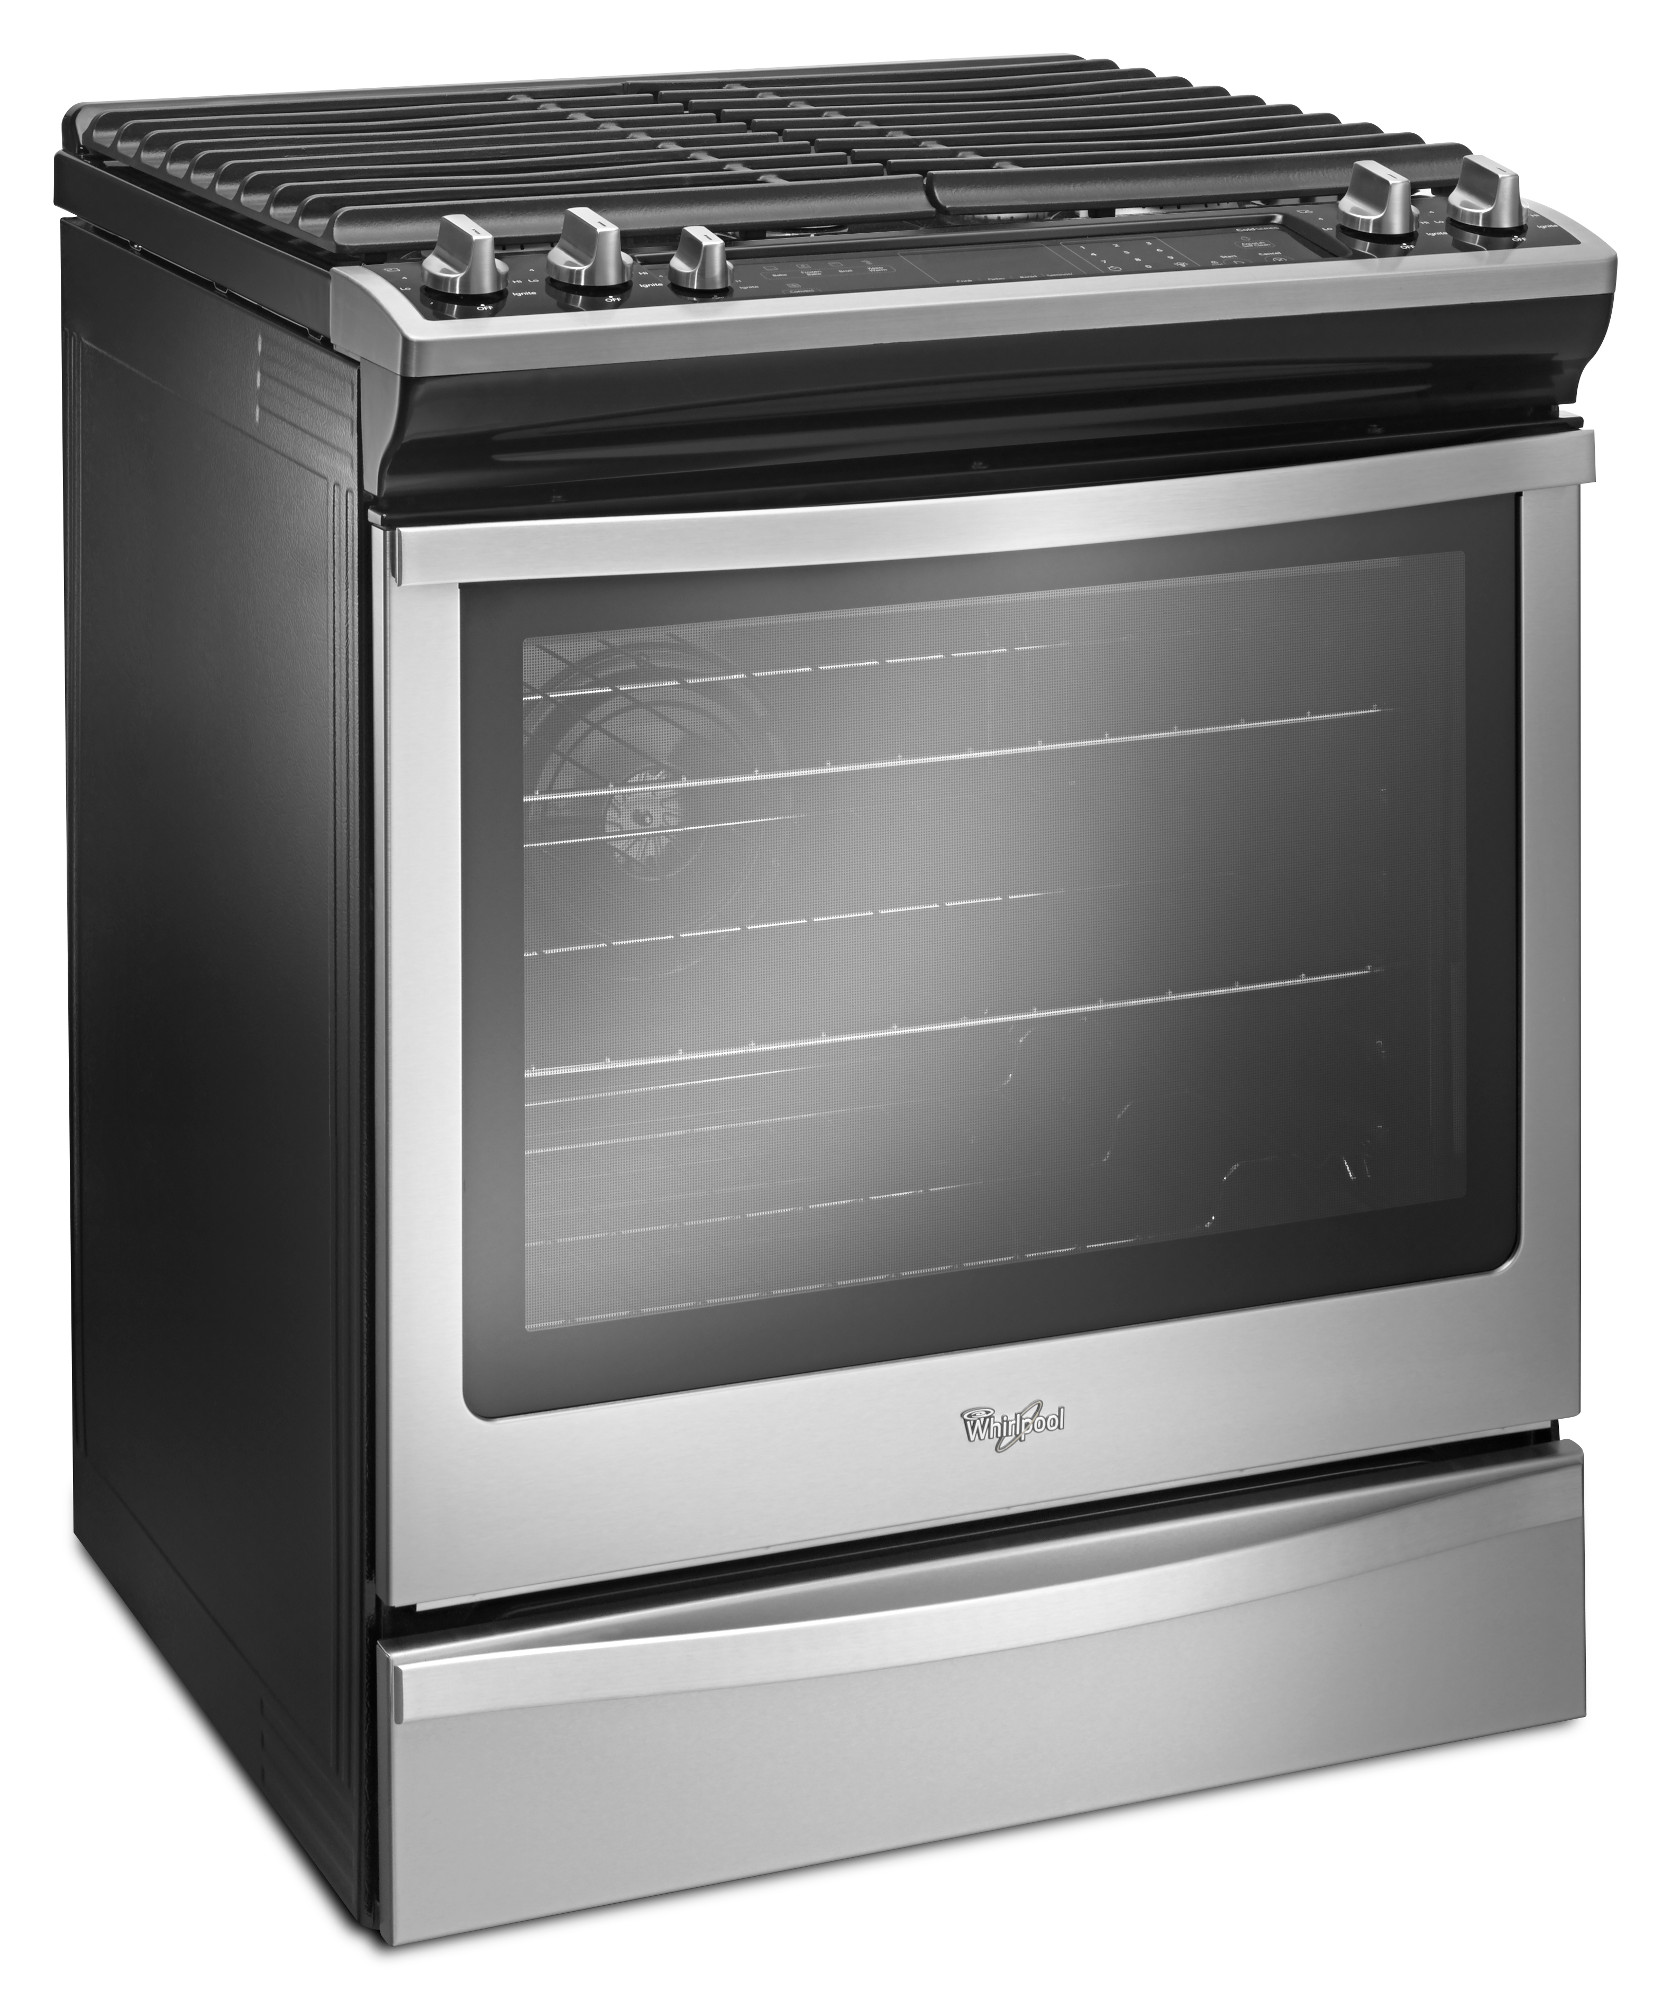 Whirlpool WEG745H0FS 5.8 cu. ft. Front-Control Gas Range with Center Oval Burner - Stainless Steel